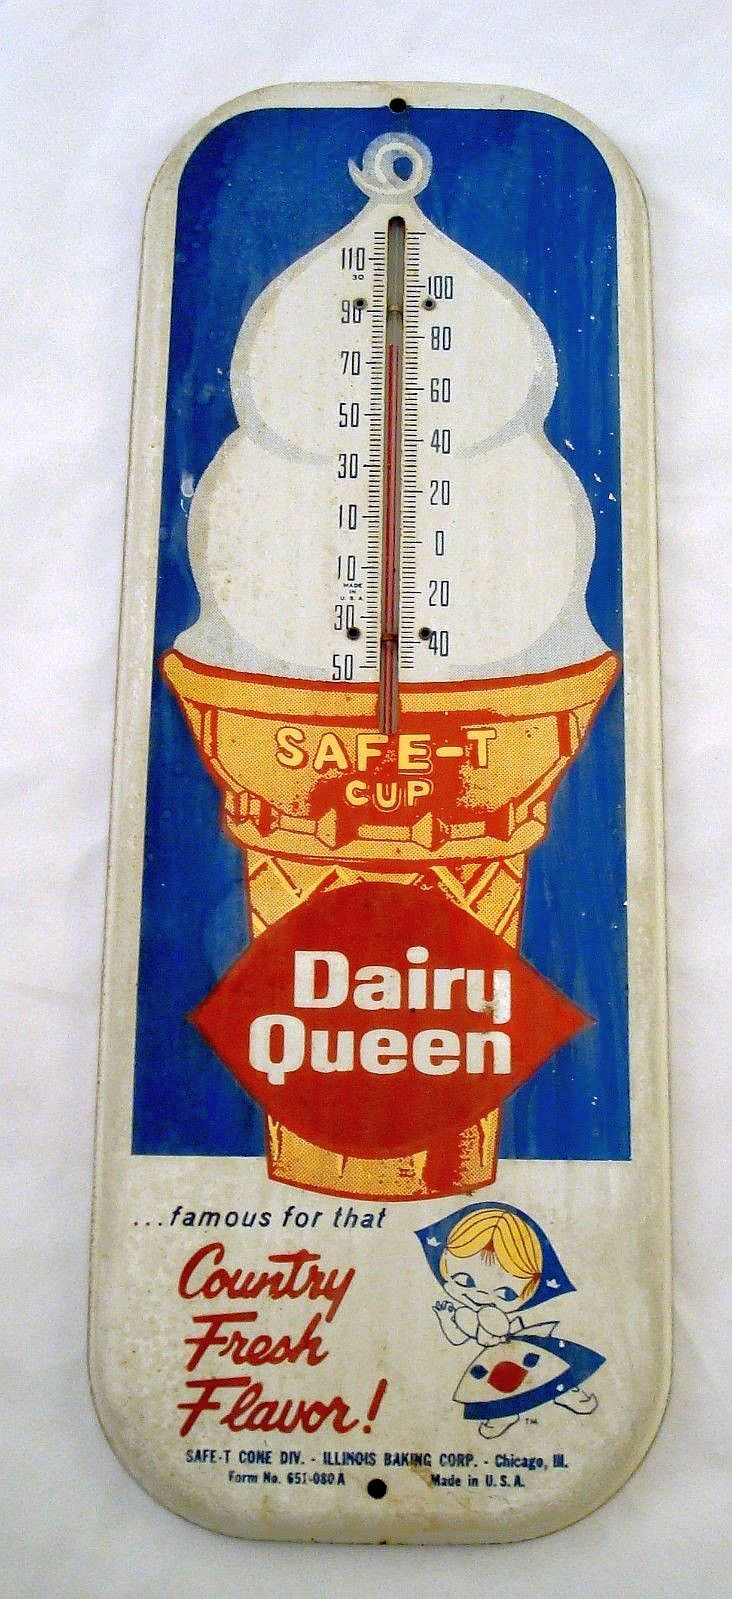 """Dairy Queen Vintage Thermometer (Old 1940 Antique Ice Cream Cone Dessert Advertising Sign, Safe-T Cup, """"Country Fresh Flavor!"""")Biddy Craft"""